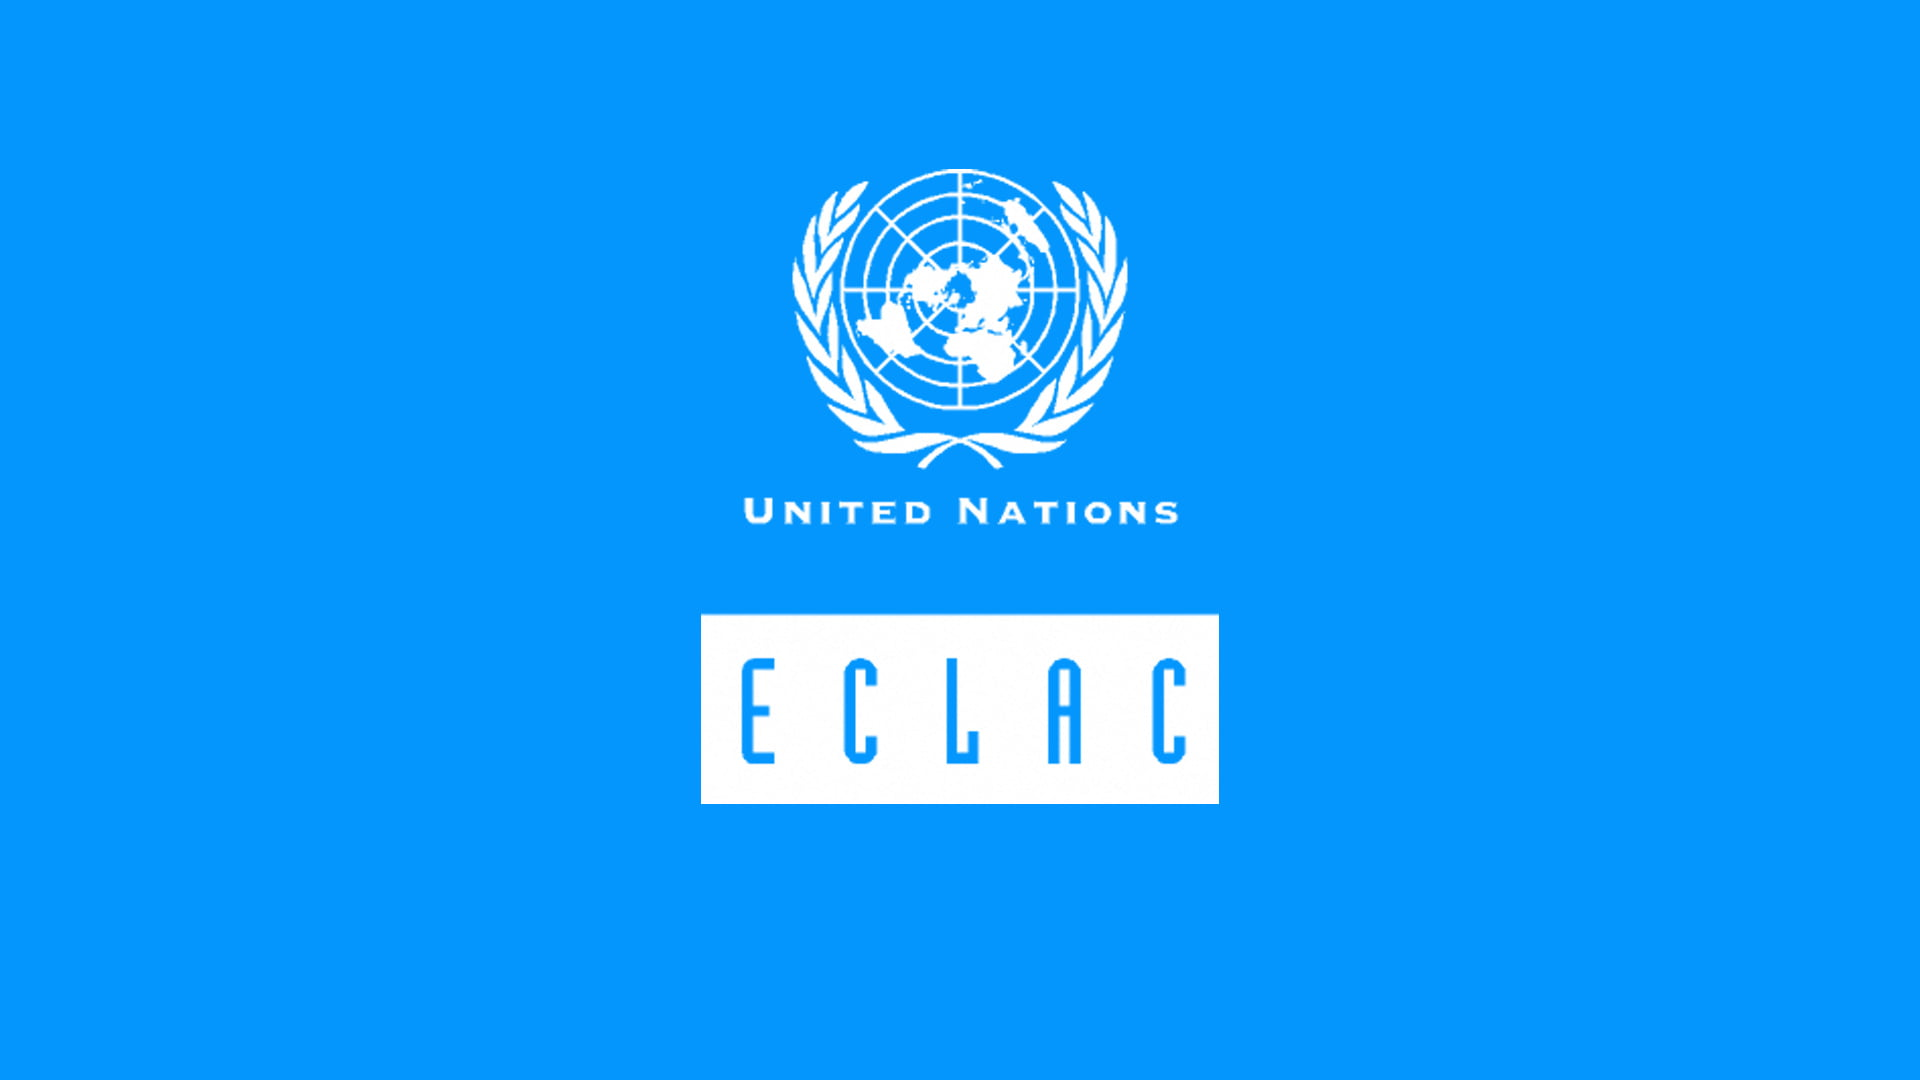 ECLAC predicts region's 2021 growth will be insufficient to recover pre-pandemic levels